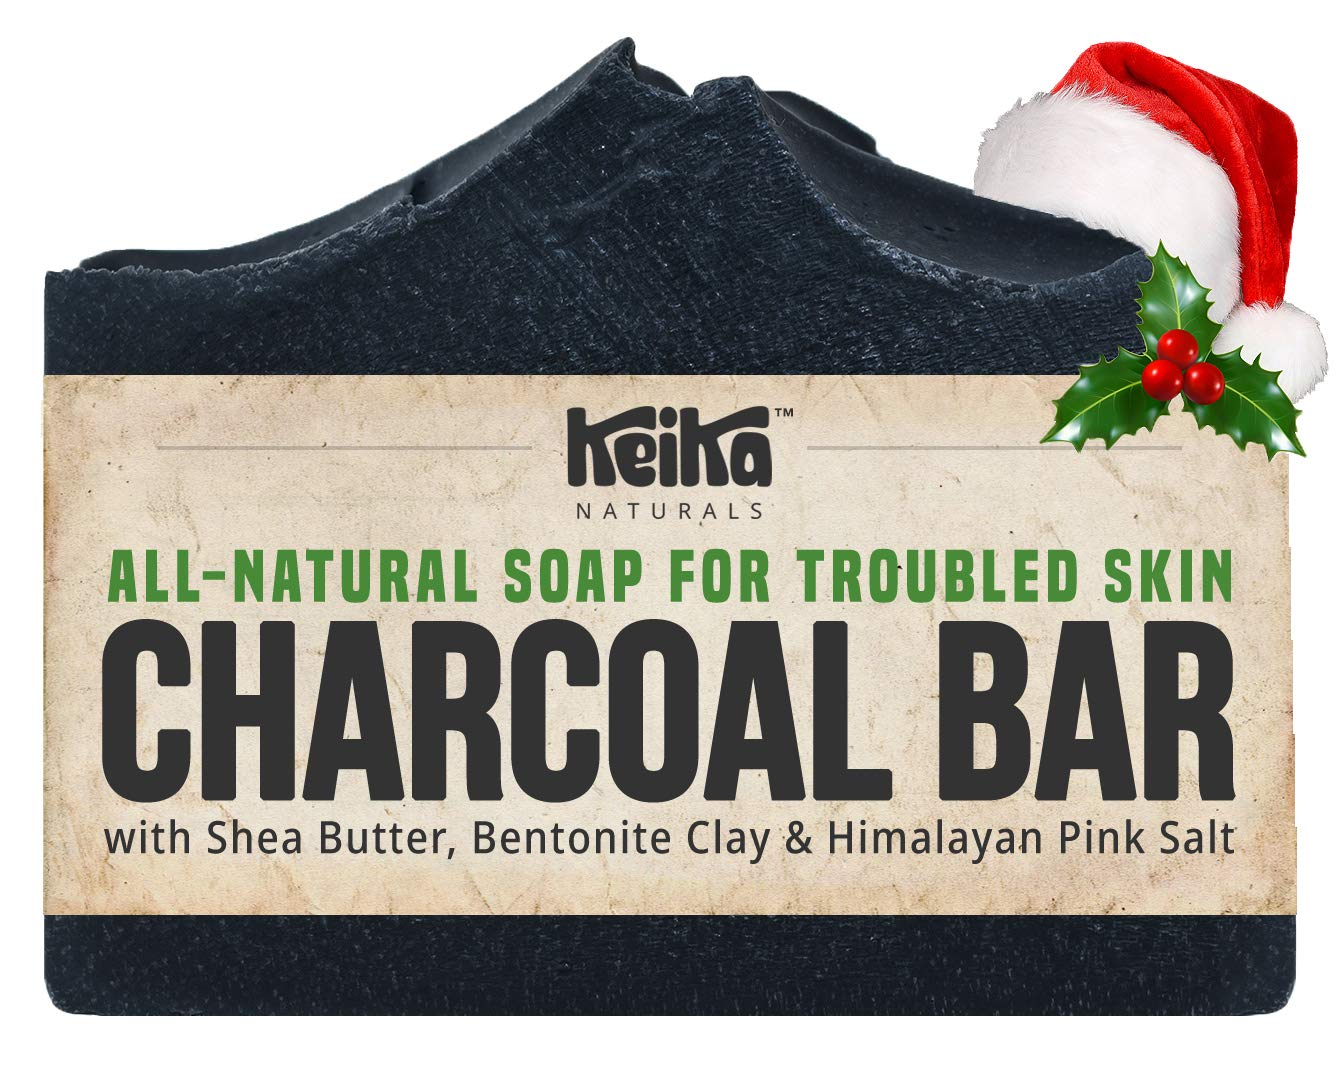 Charcoal Black Soap Bar with Shea Butter for Face, Acne, Blackheads, Eczema, Psoriasis | 100% All-Natural Vegan. Fragrance-Free. Non-GMO. Handmade. Facial Cleanser Soap for Oily Skin. 5 oz.